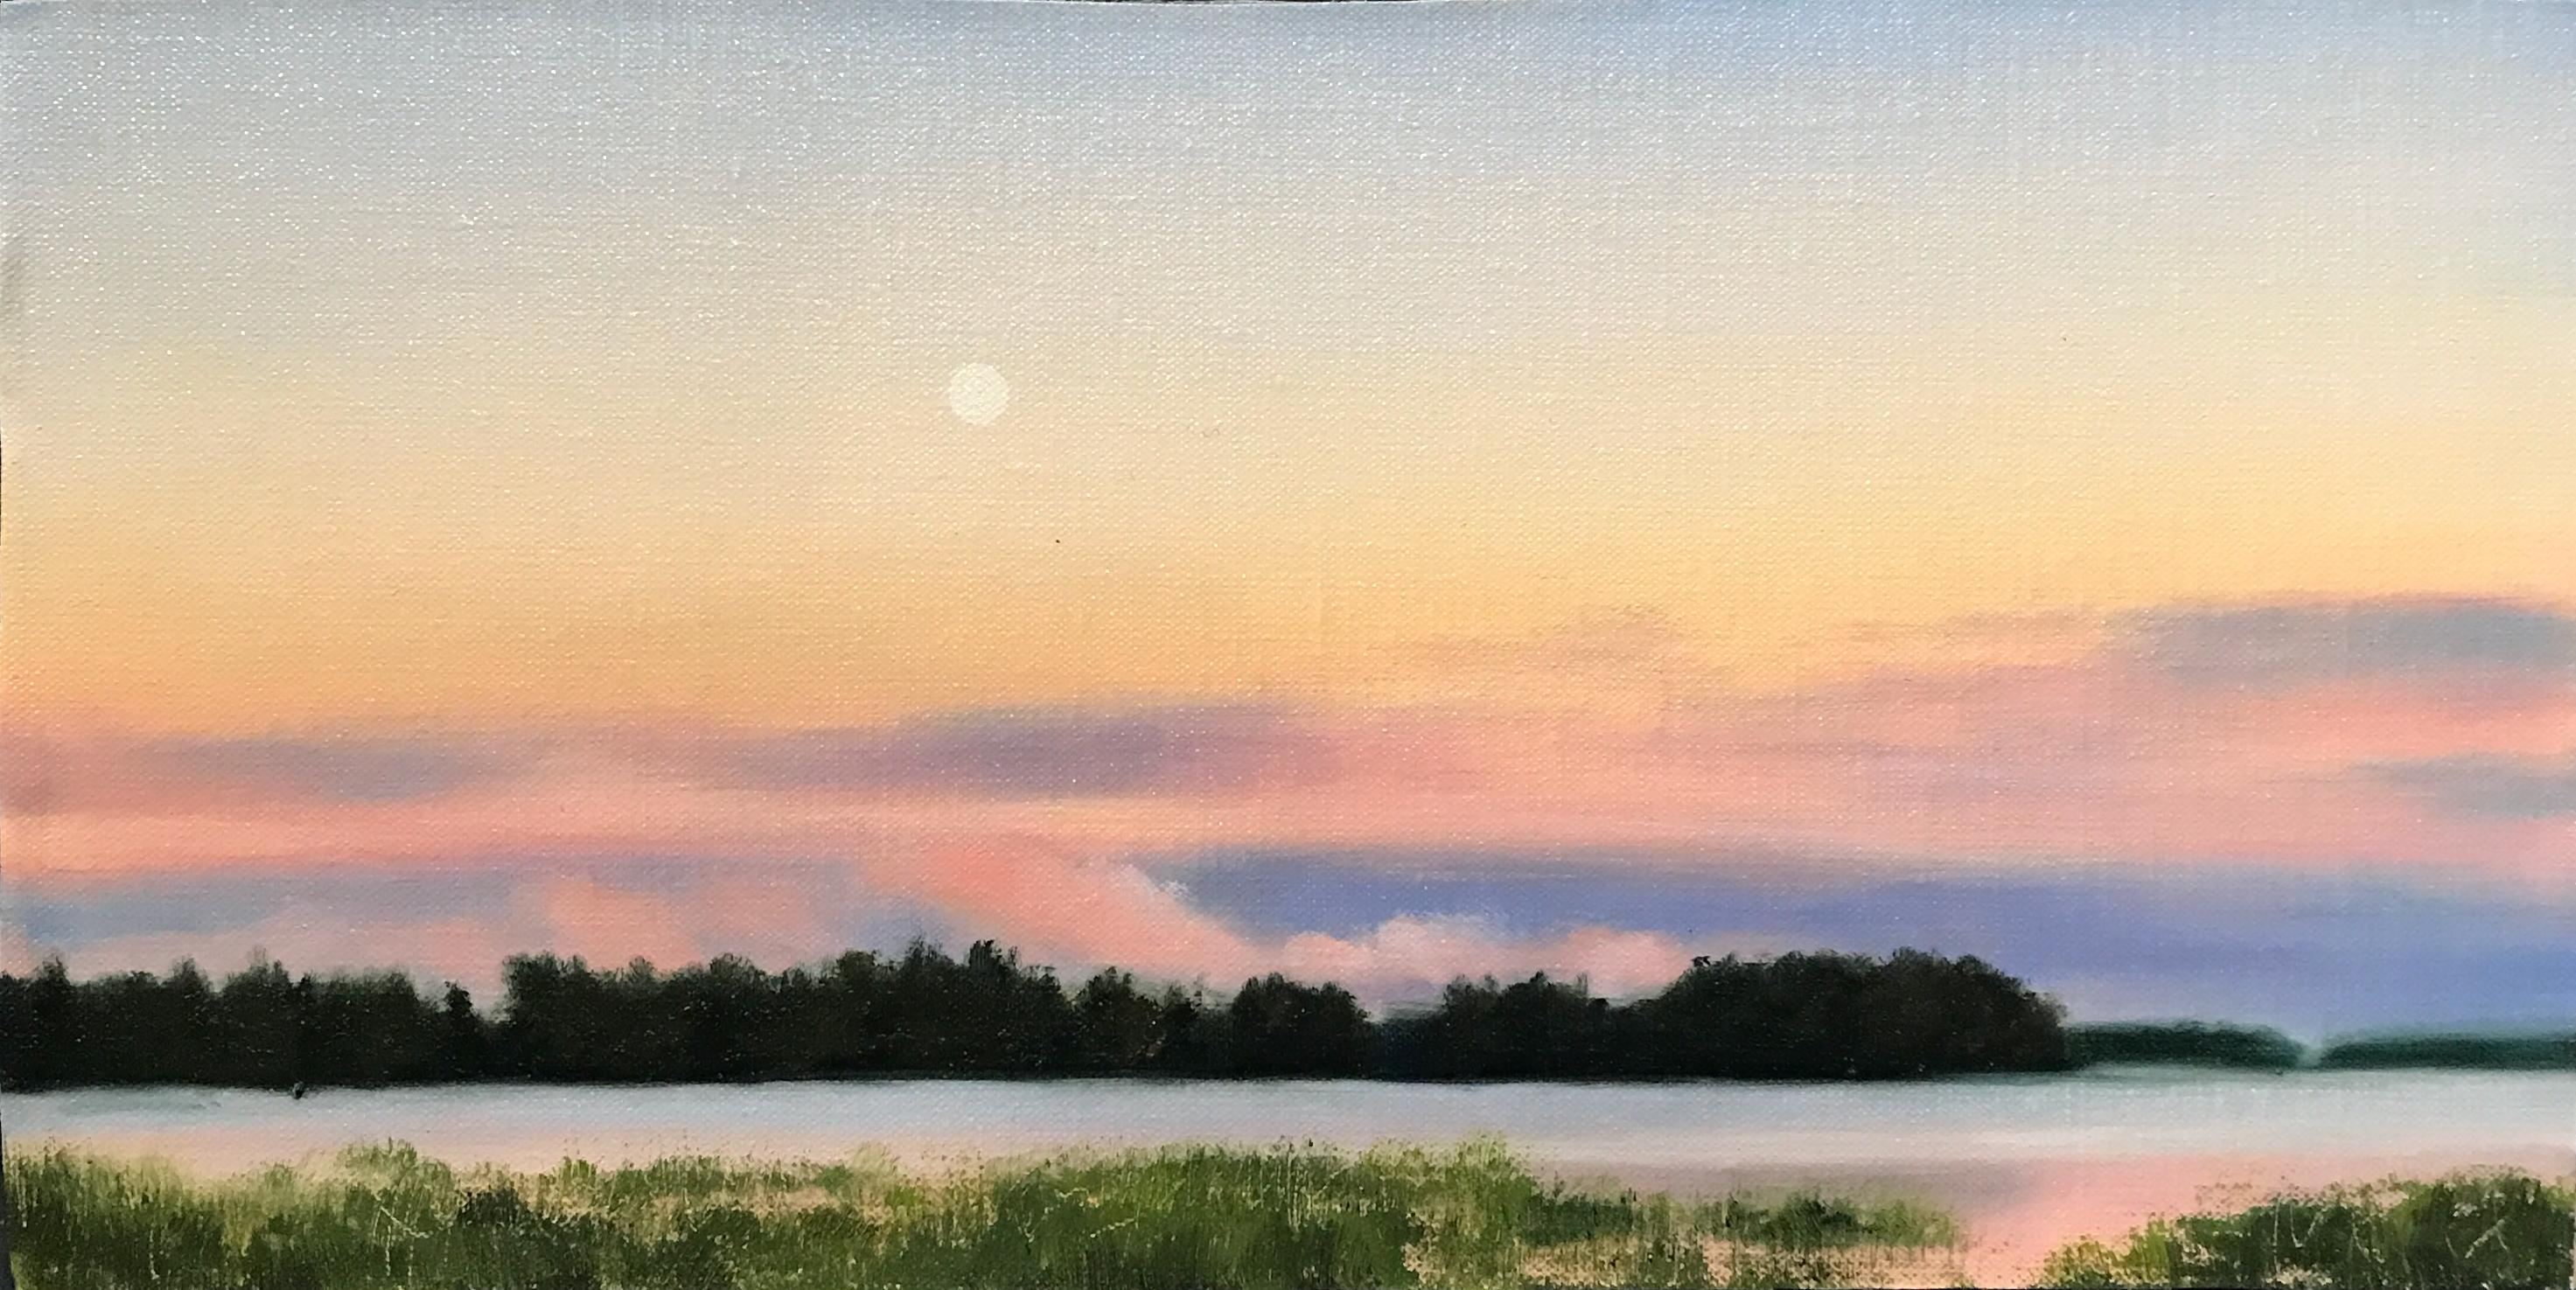 Finnish Landscape, Moon Over a Lake 1, Rafael Guerra Painting Pintura